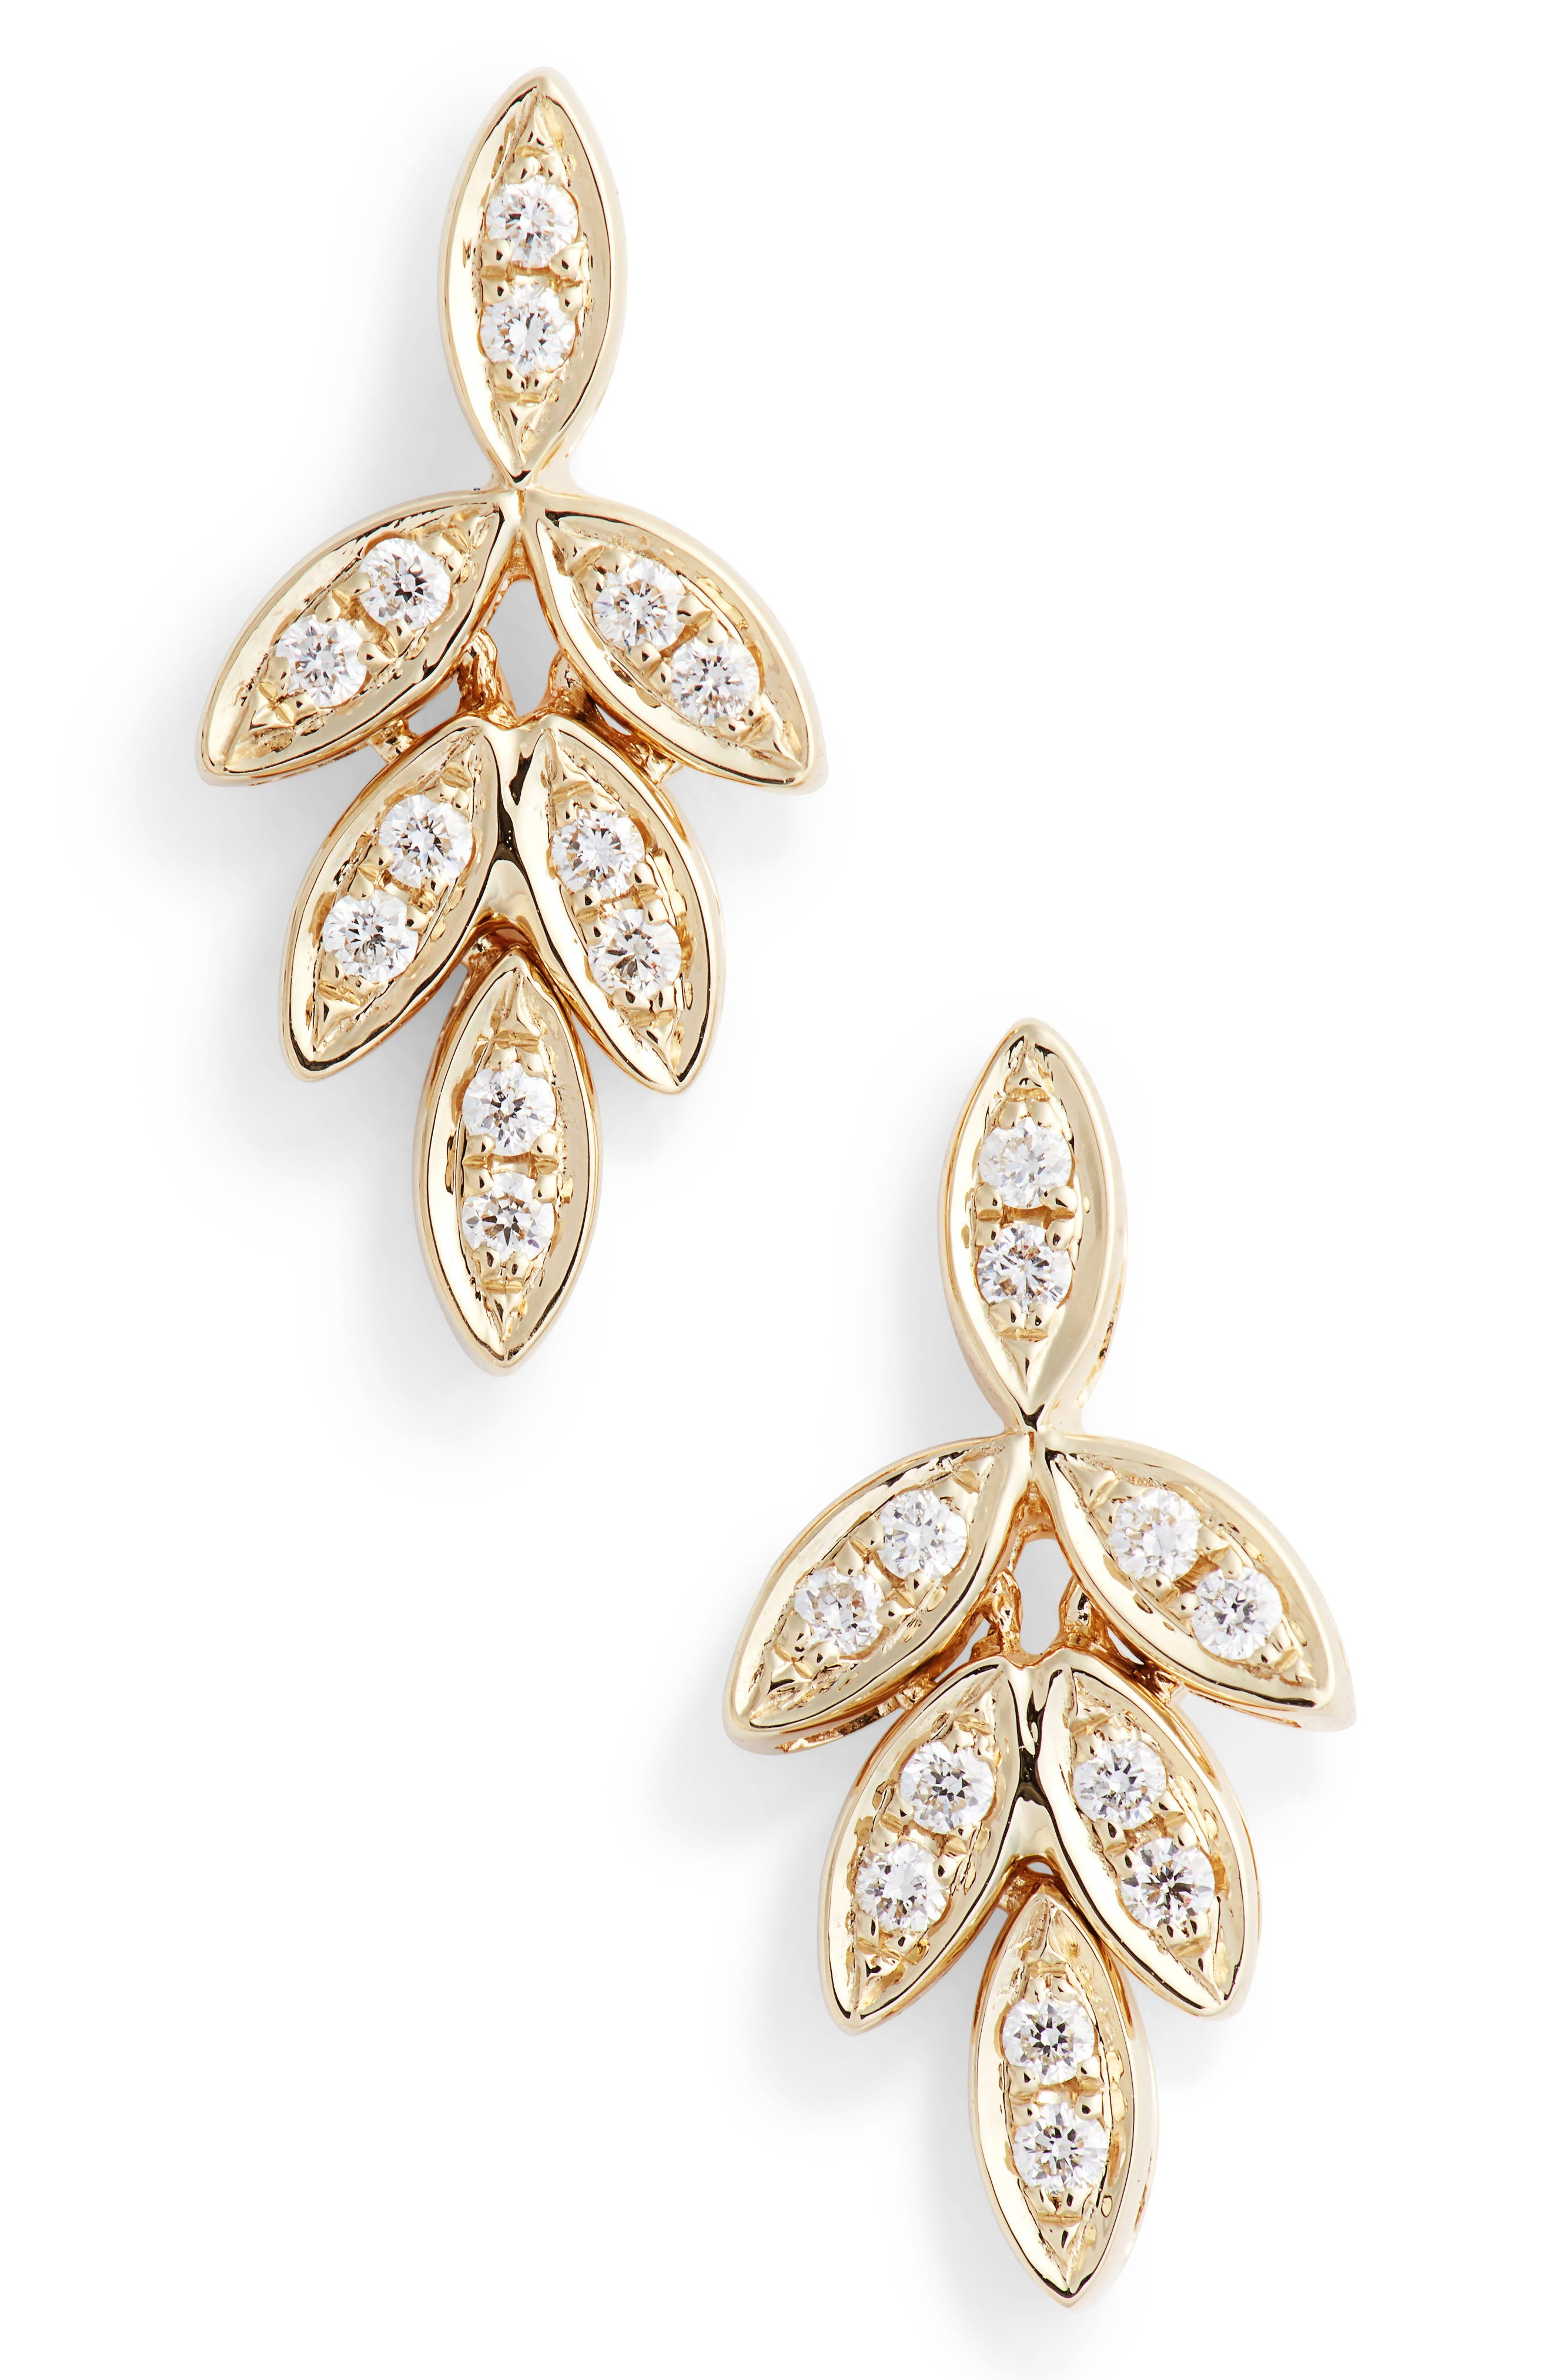 Dana Rebecca Lori Paige Diamond Leaf Stud Earrings,                             Main thumbnail 1, color,                             710